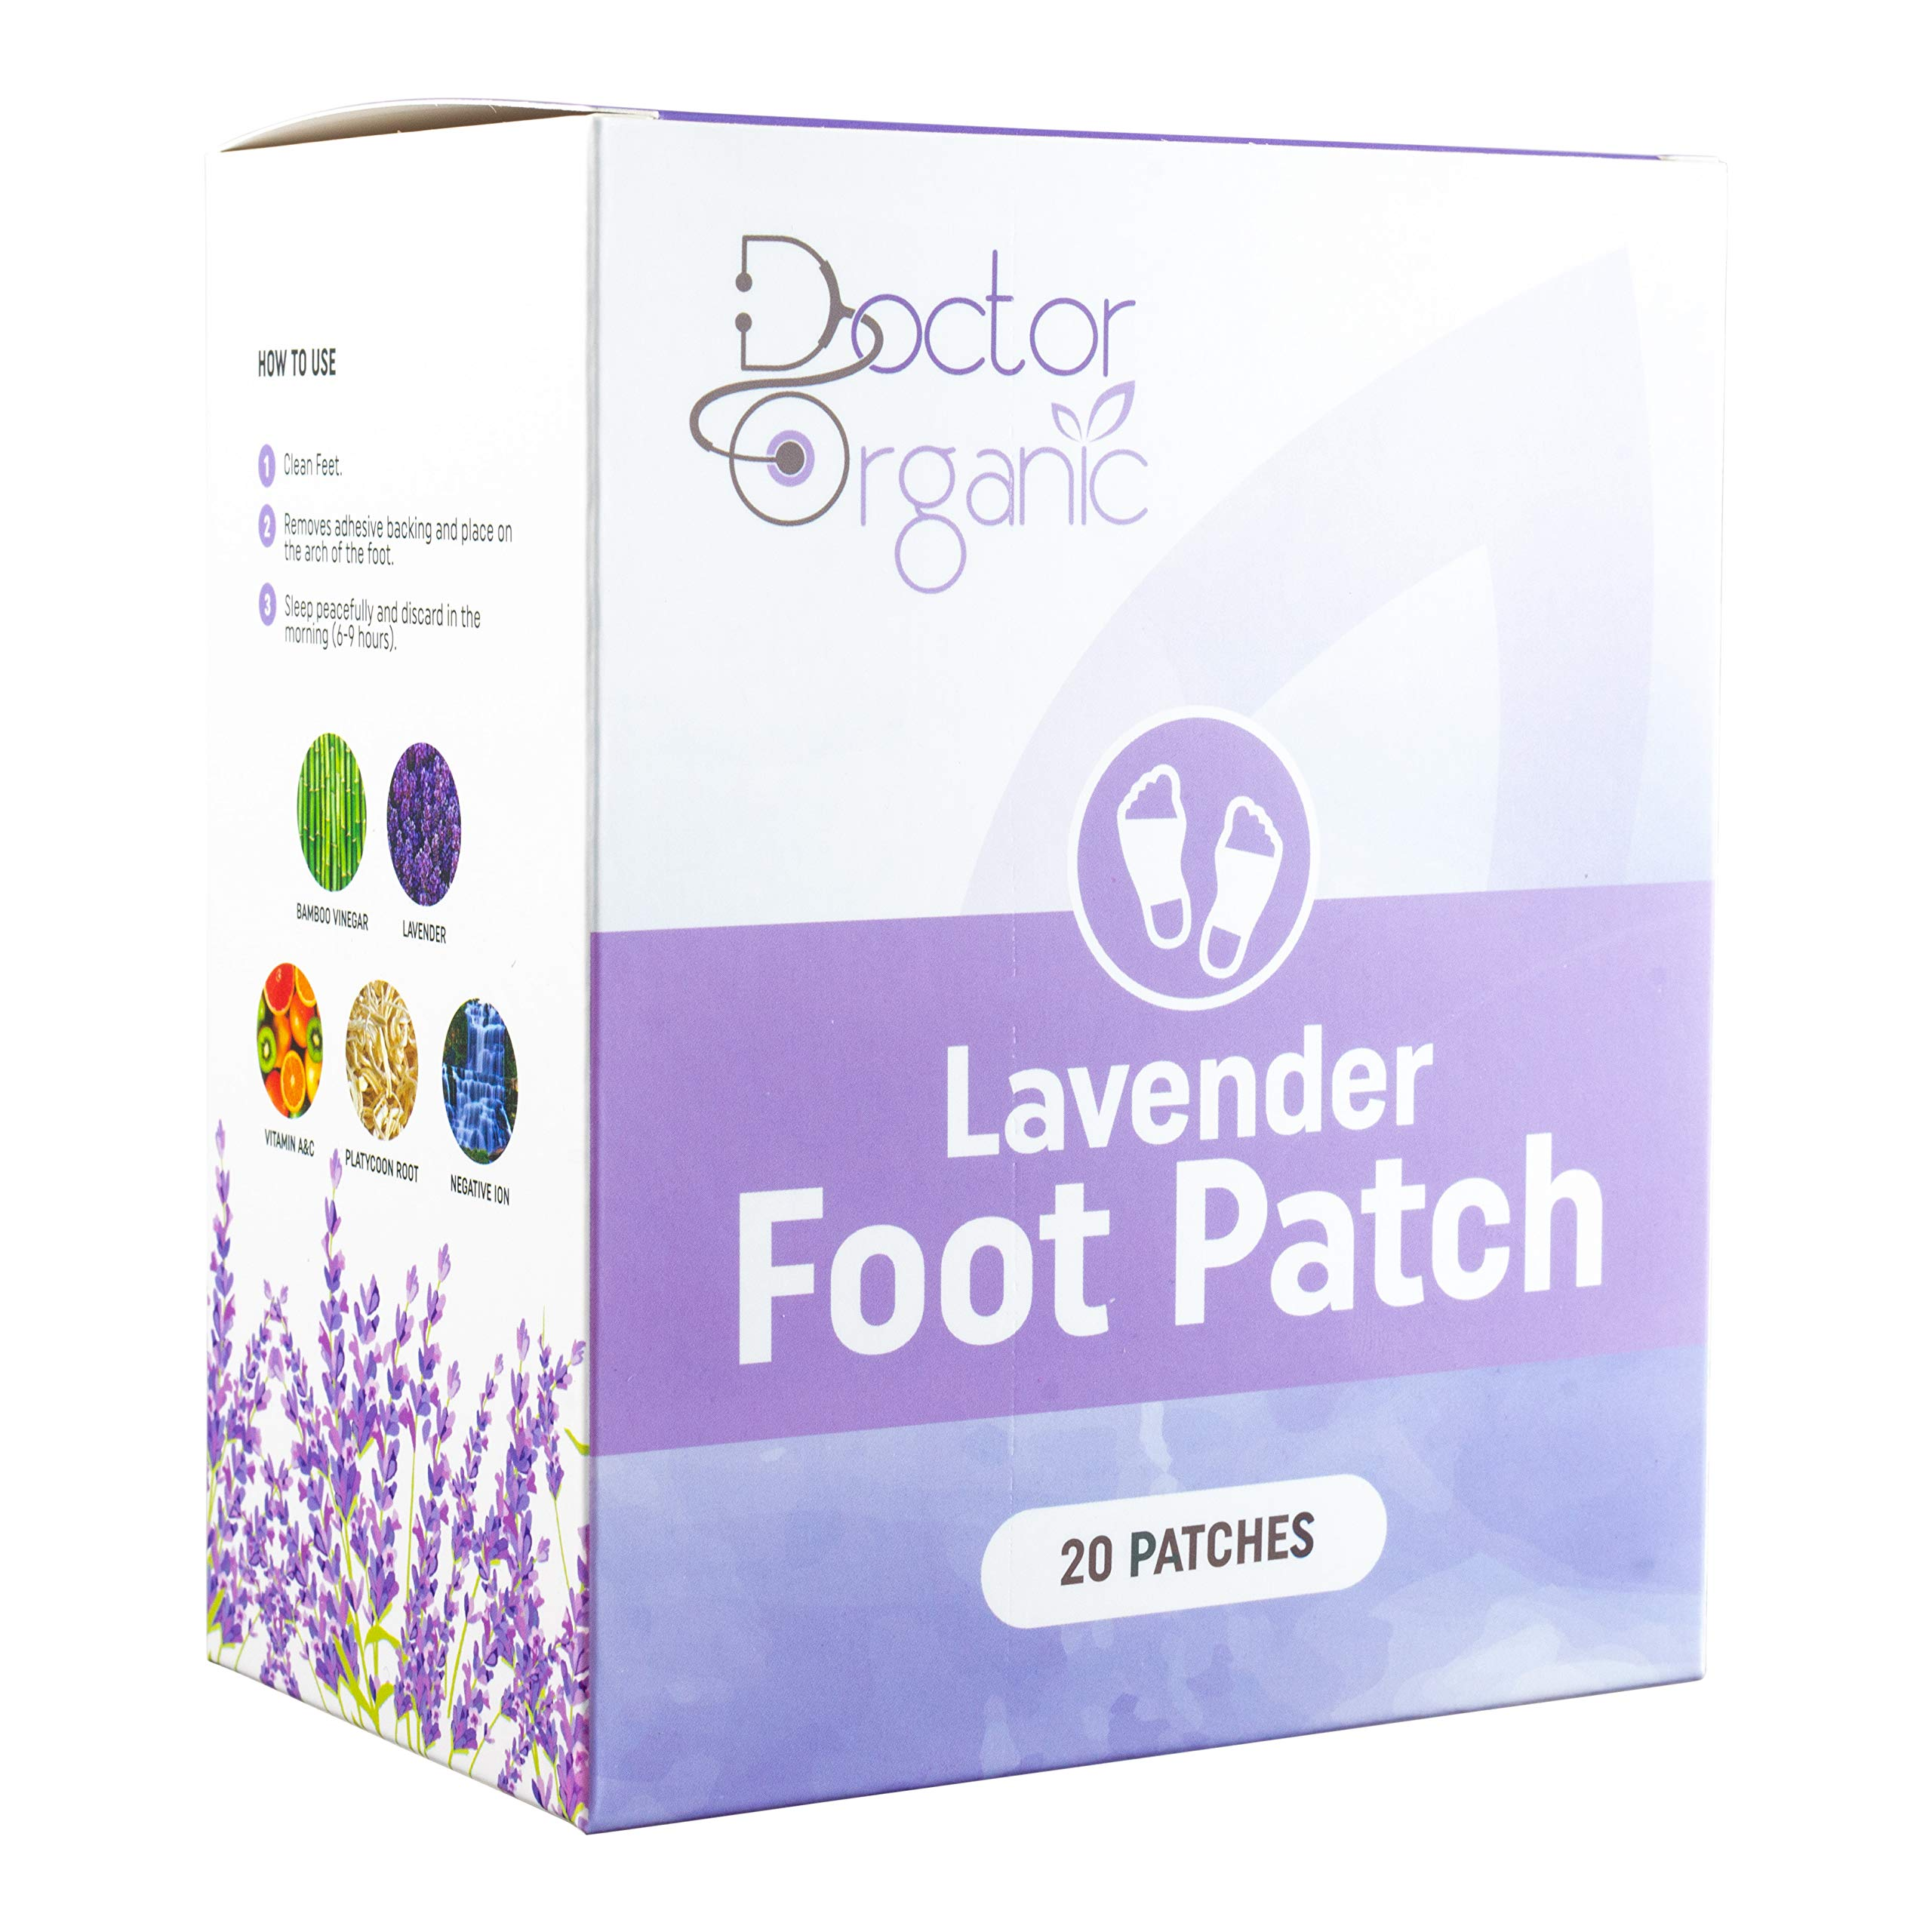 Foot Pads by Doctor Organic – Patches with Woven Cloth Design to Prevent Patch from Coming Off at Night - Bamboo Vinegar with Lavender Scent - Naturally Derived Ingredients by Doctor Organic